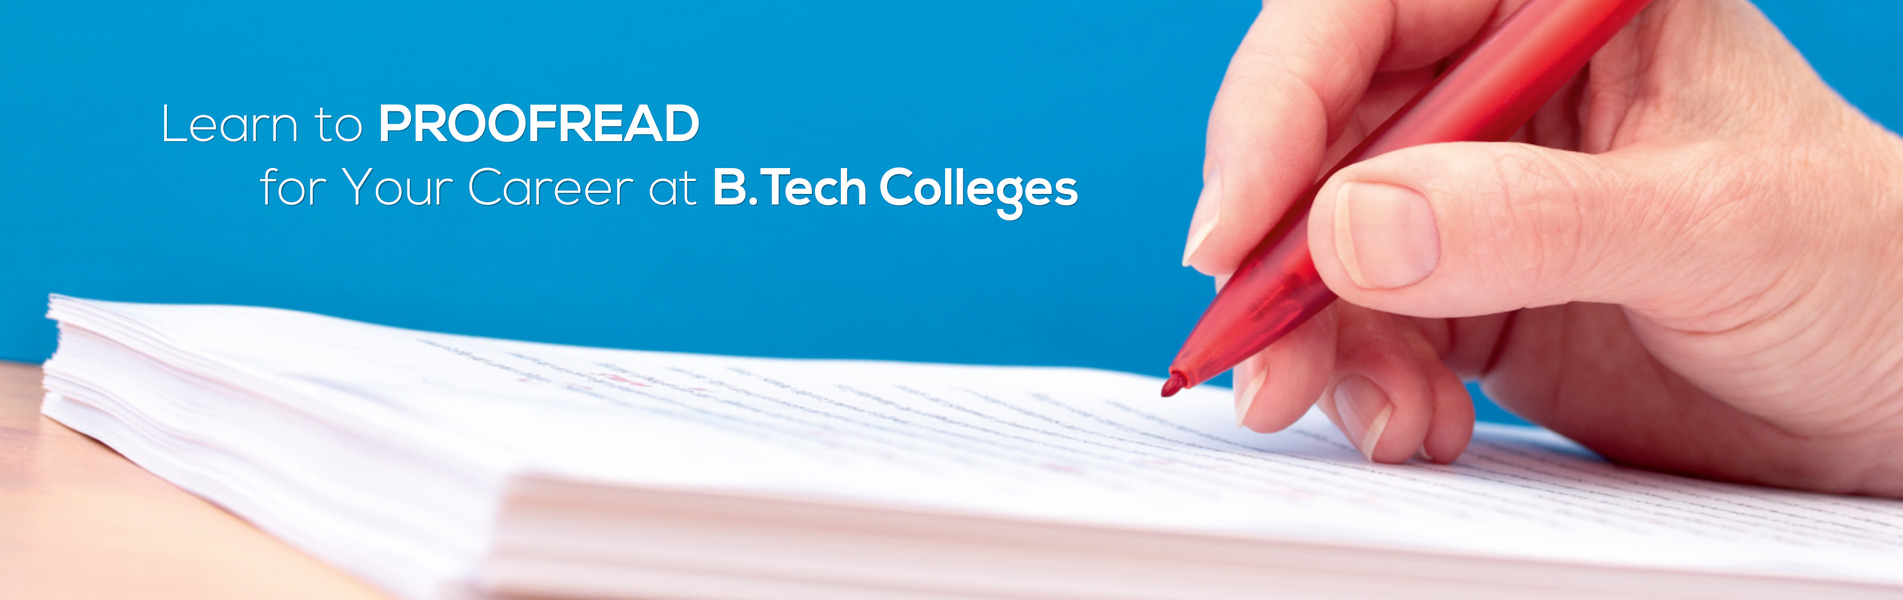 Learn-to-proofread-for-your-career-at-B-Tech-Colleges